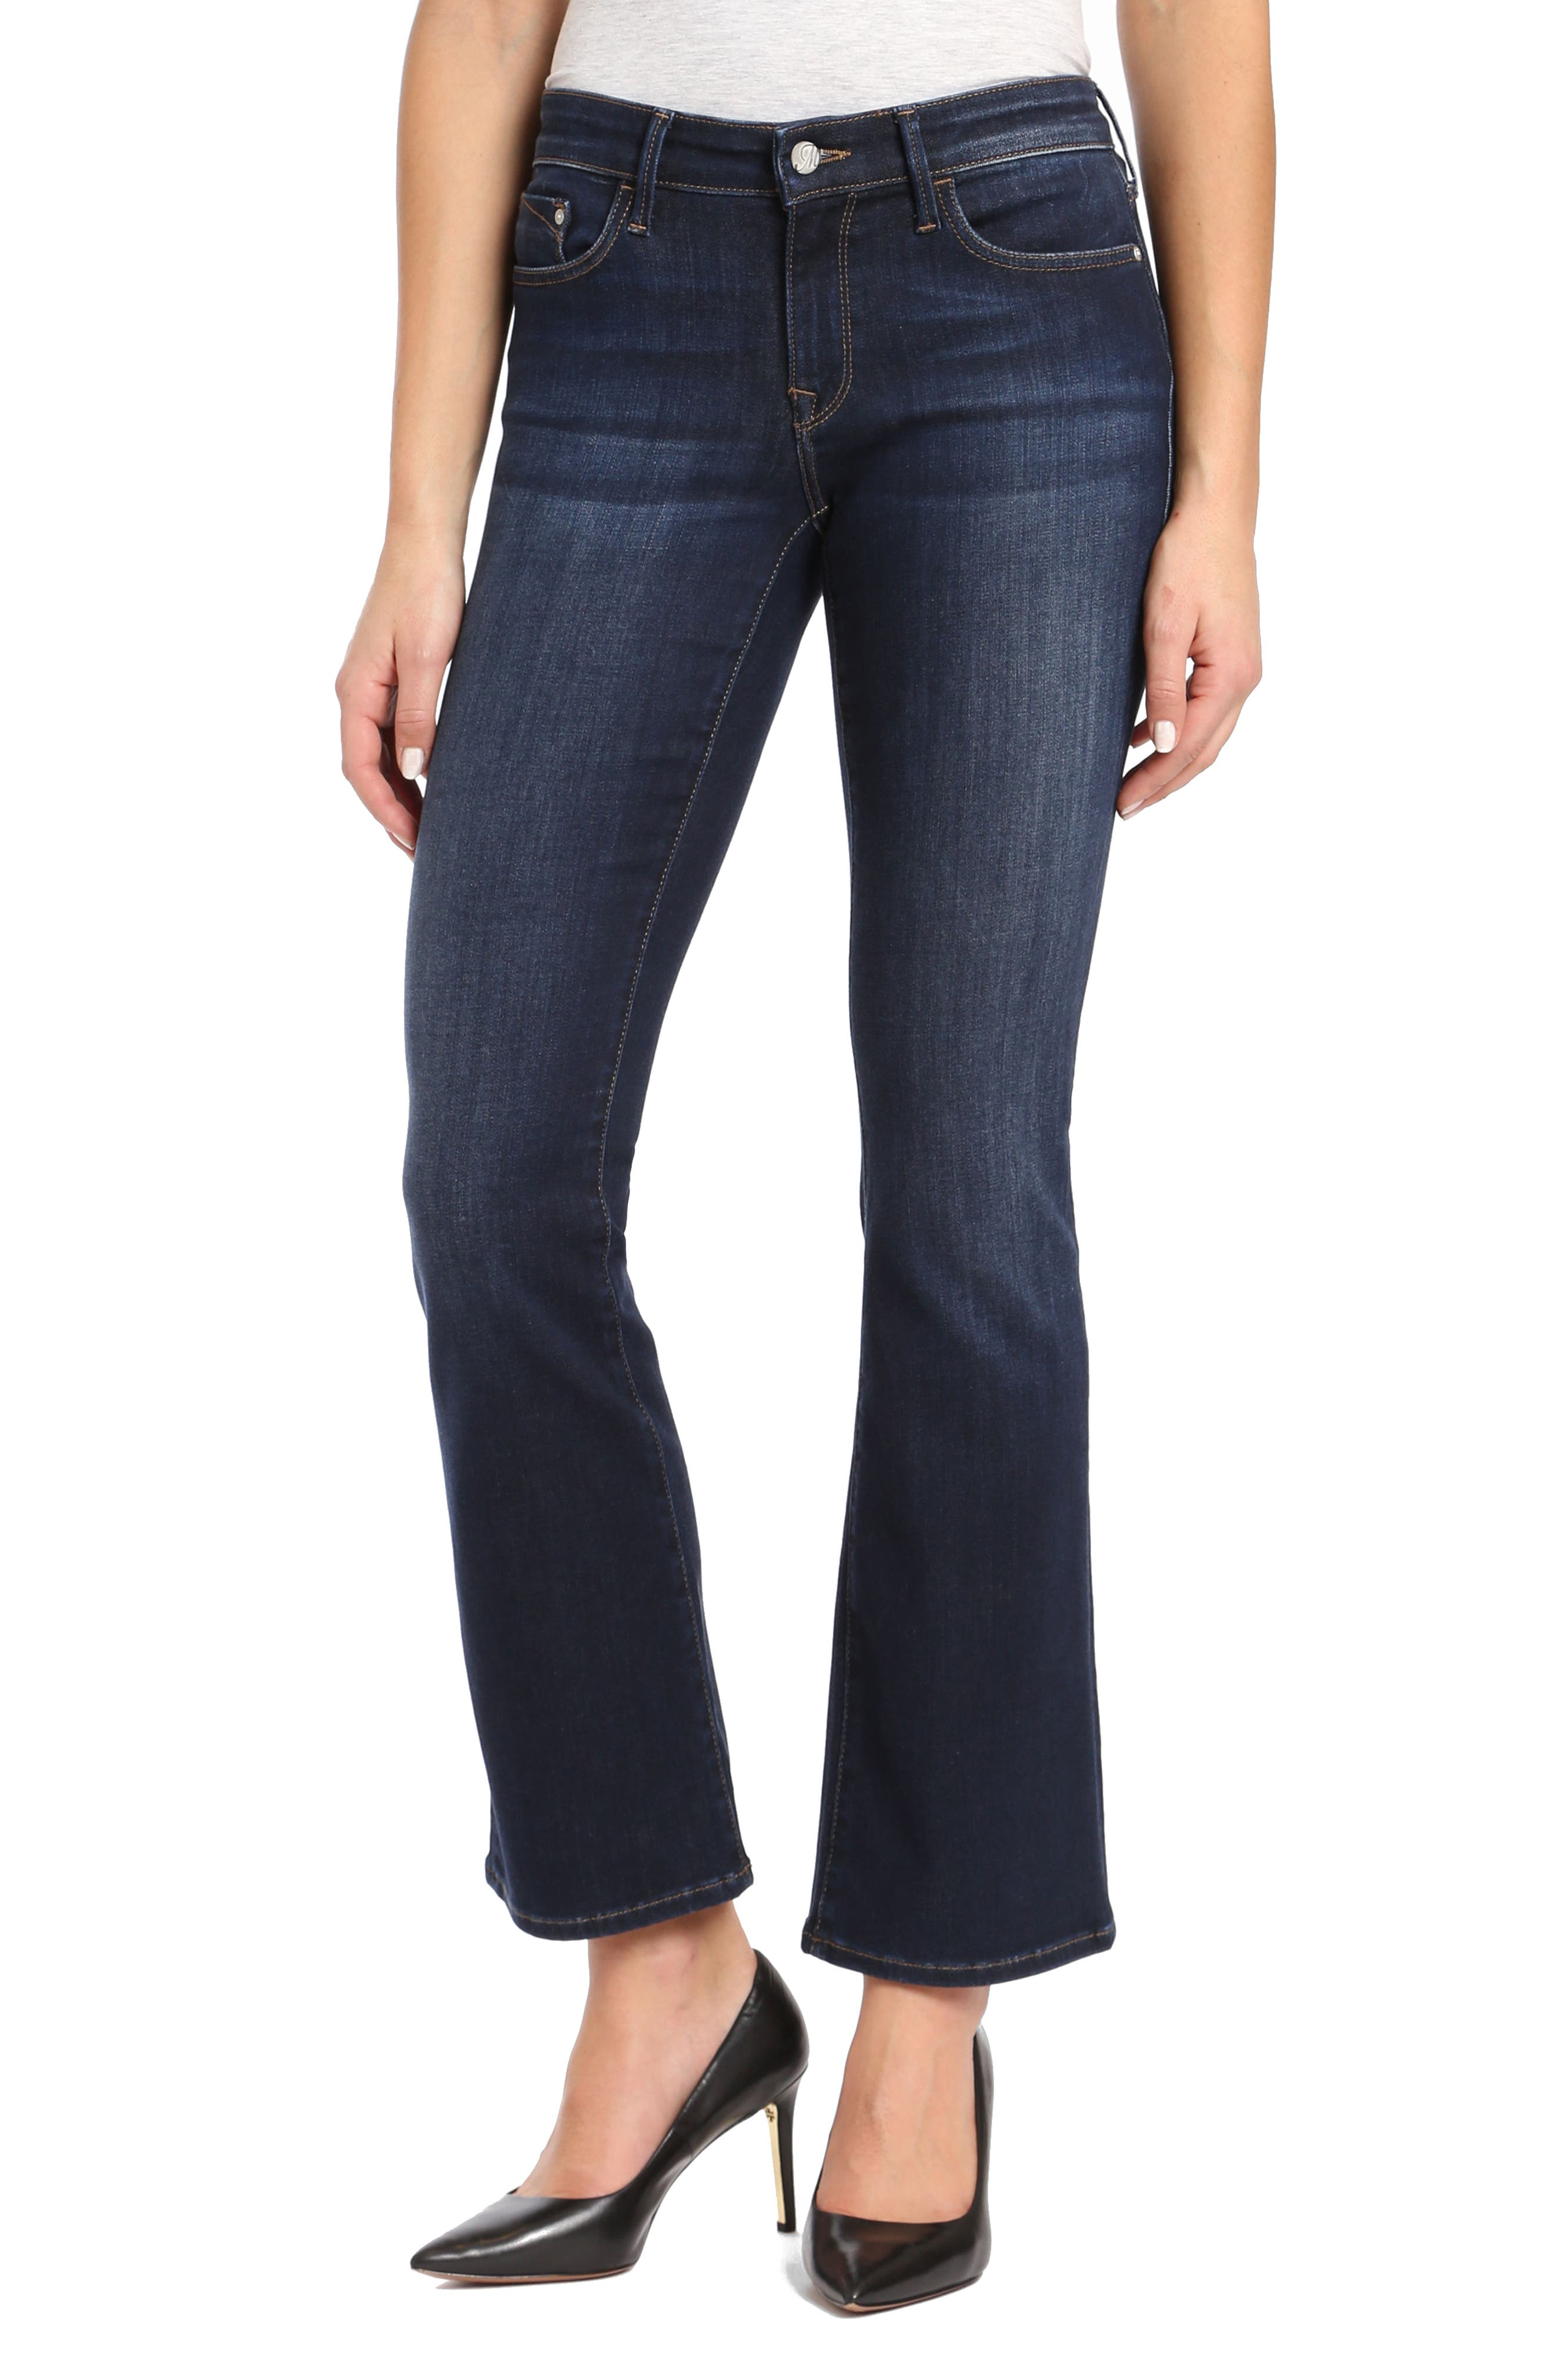 Molly Classic Bootcuts Jeans